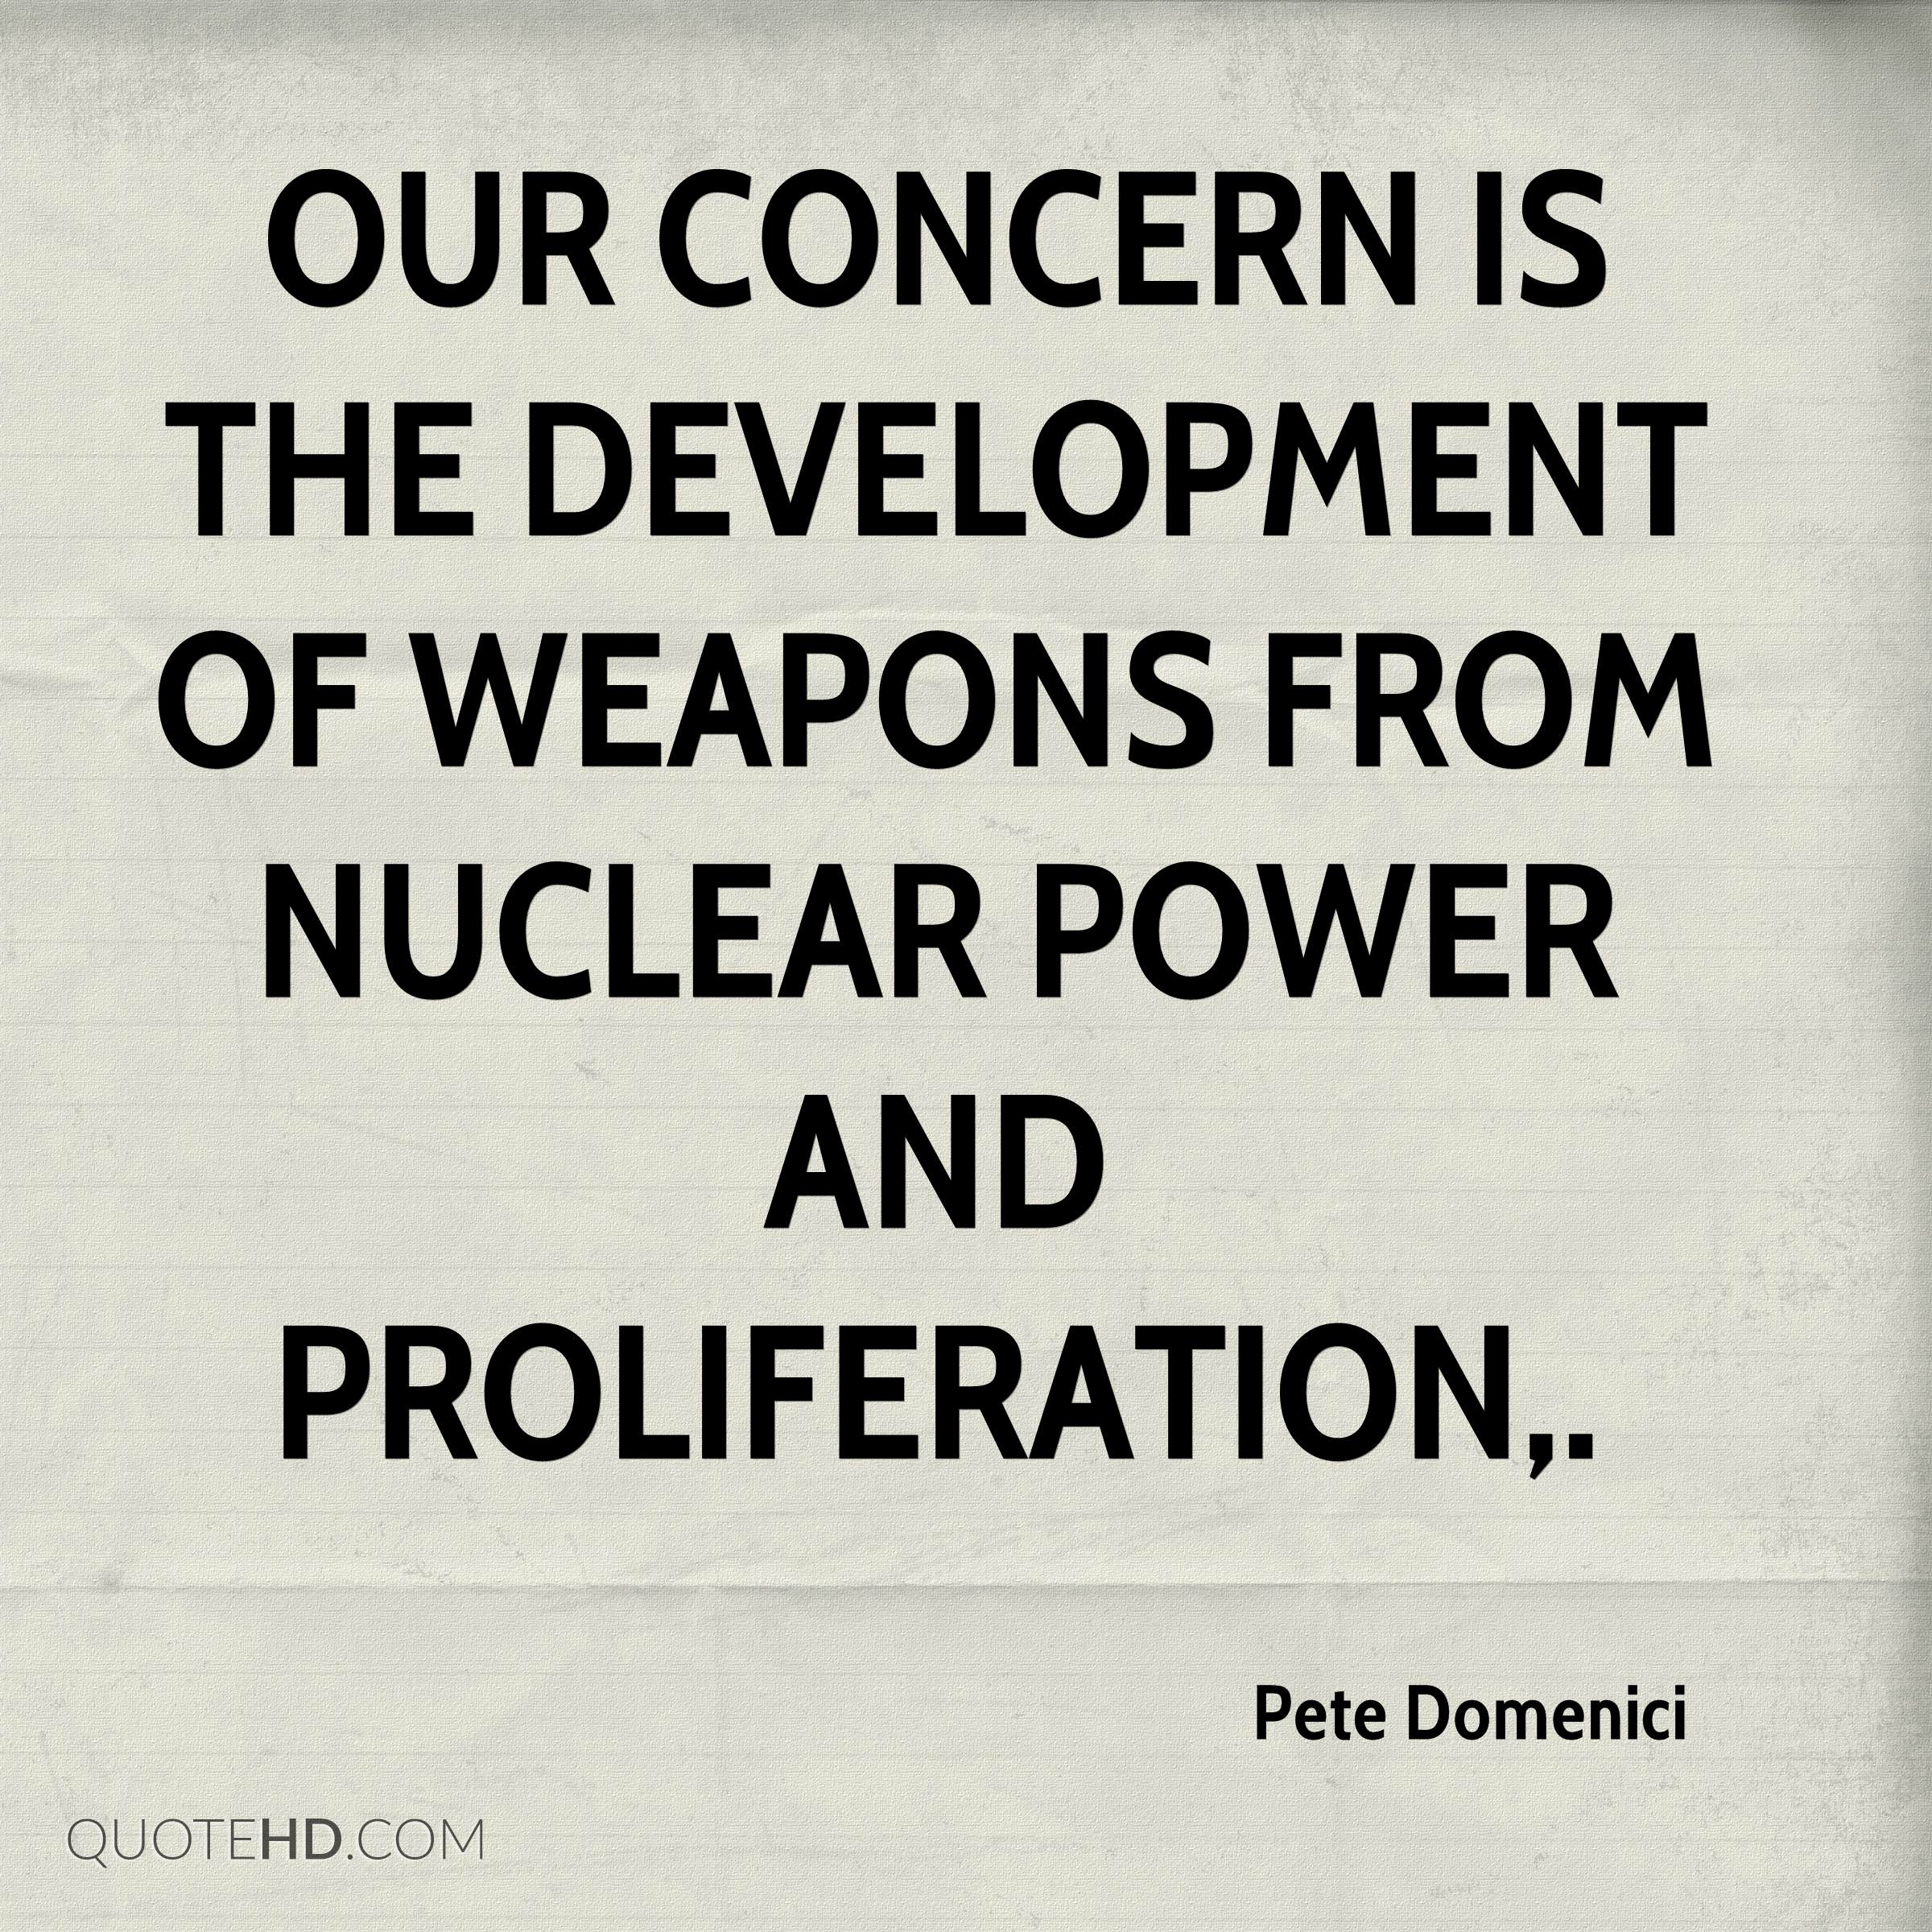 Our concern is the development of weapons from nuclear power and proliferation.